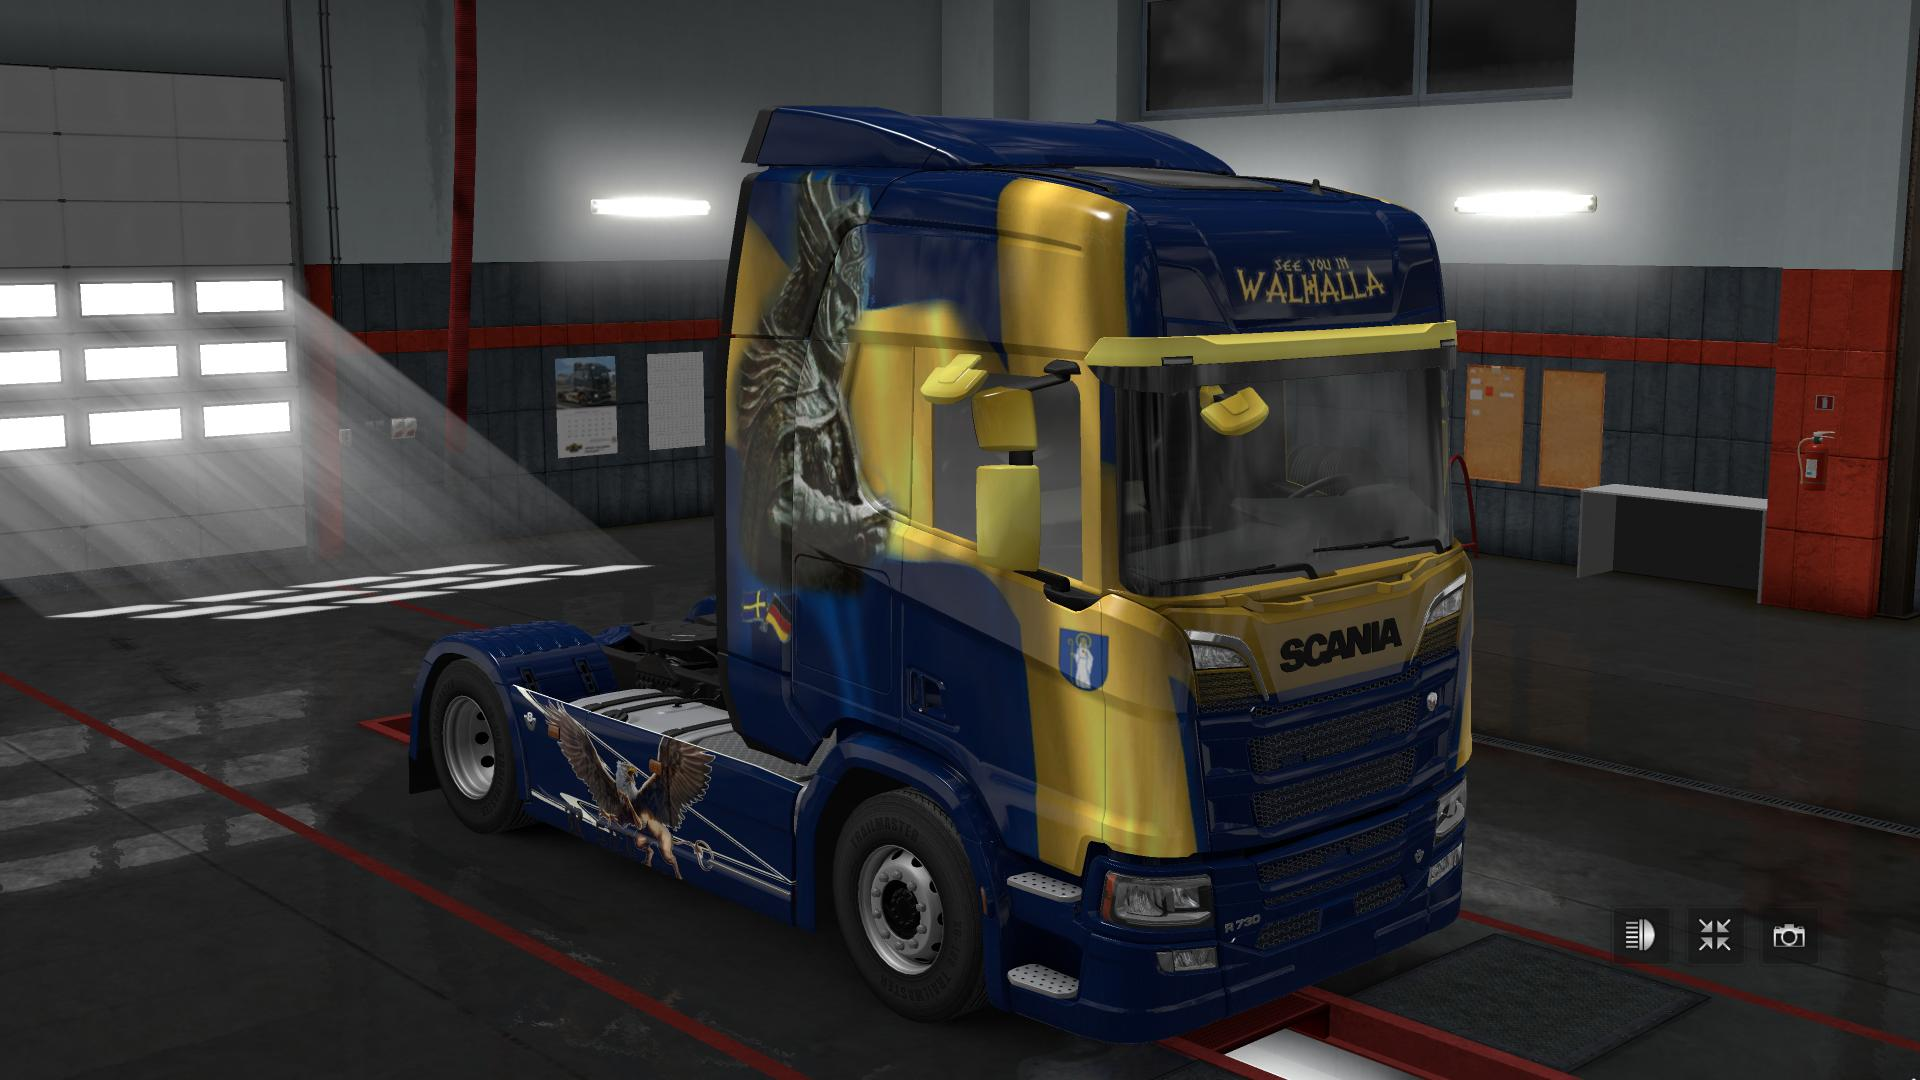 Scania Rs Longline Scania T Longline Fairy Truck Skins also Scania Rs Skin Mix Pack V By Blackwolf M Ets also Scania Nez Long Stars Wars Patalacci in addition Ets Real Trailer Tyres Mod V X Tuning Mod in addition Px Scania Ro Is. on scania truck